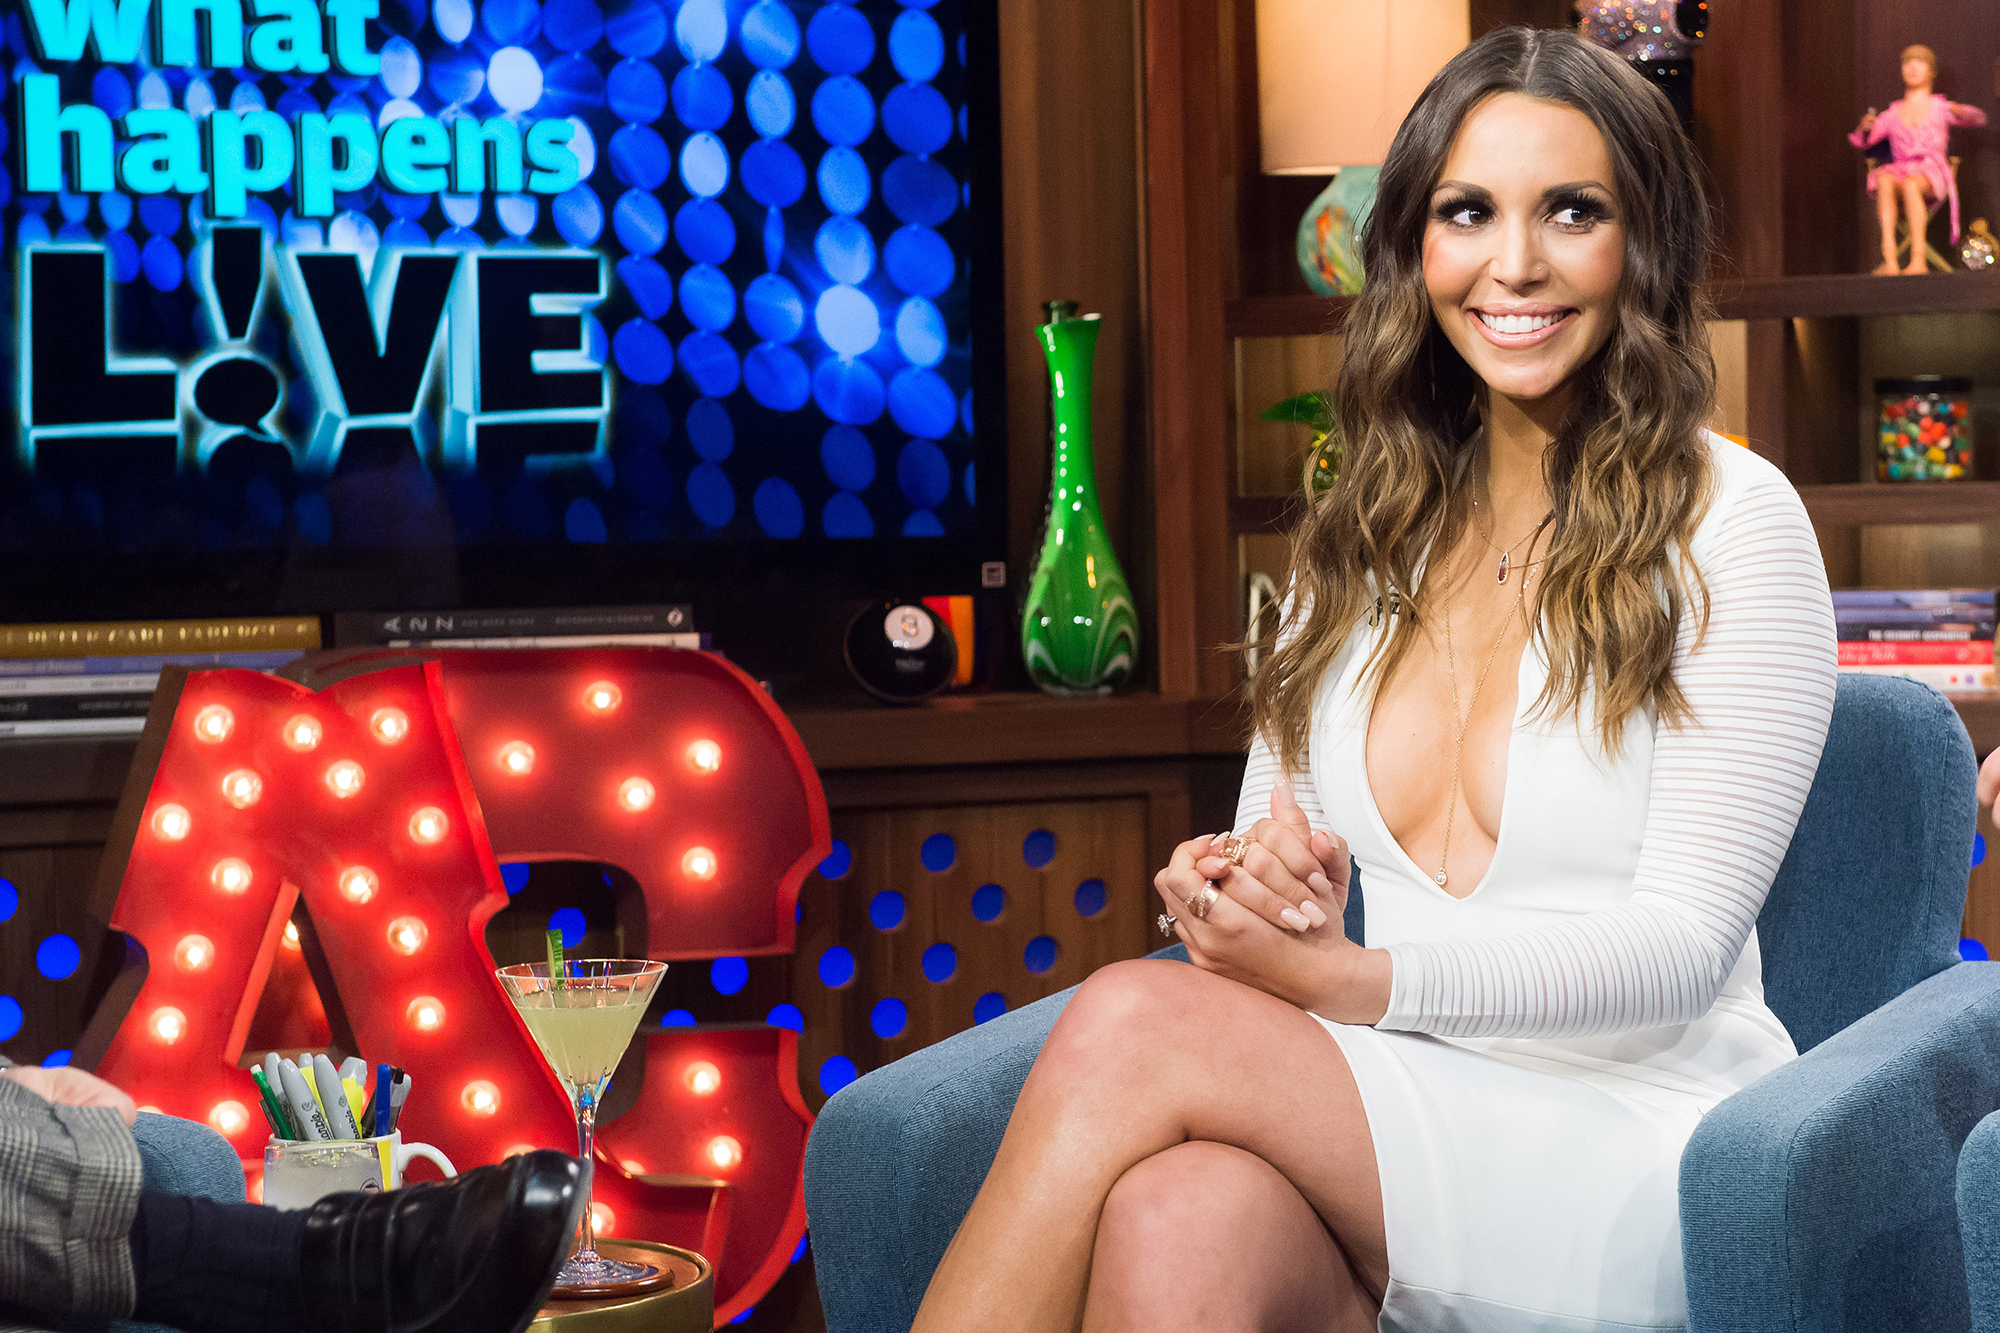 """Revisit Brandi Glanville's Feud With Eddie Cibrian and LeAnn Rimes - Scheana told Us that she """"ended things"""" with Cibrian after he was caught with Rimes. """"I'm sick of everyone saying I'm a home-wrecker – no! He wrecked his own home,"""" she said."""